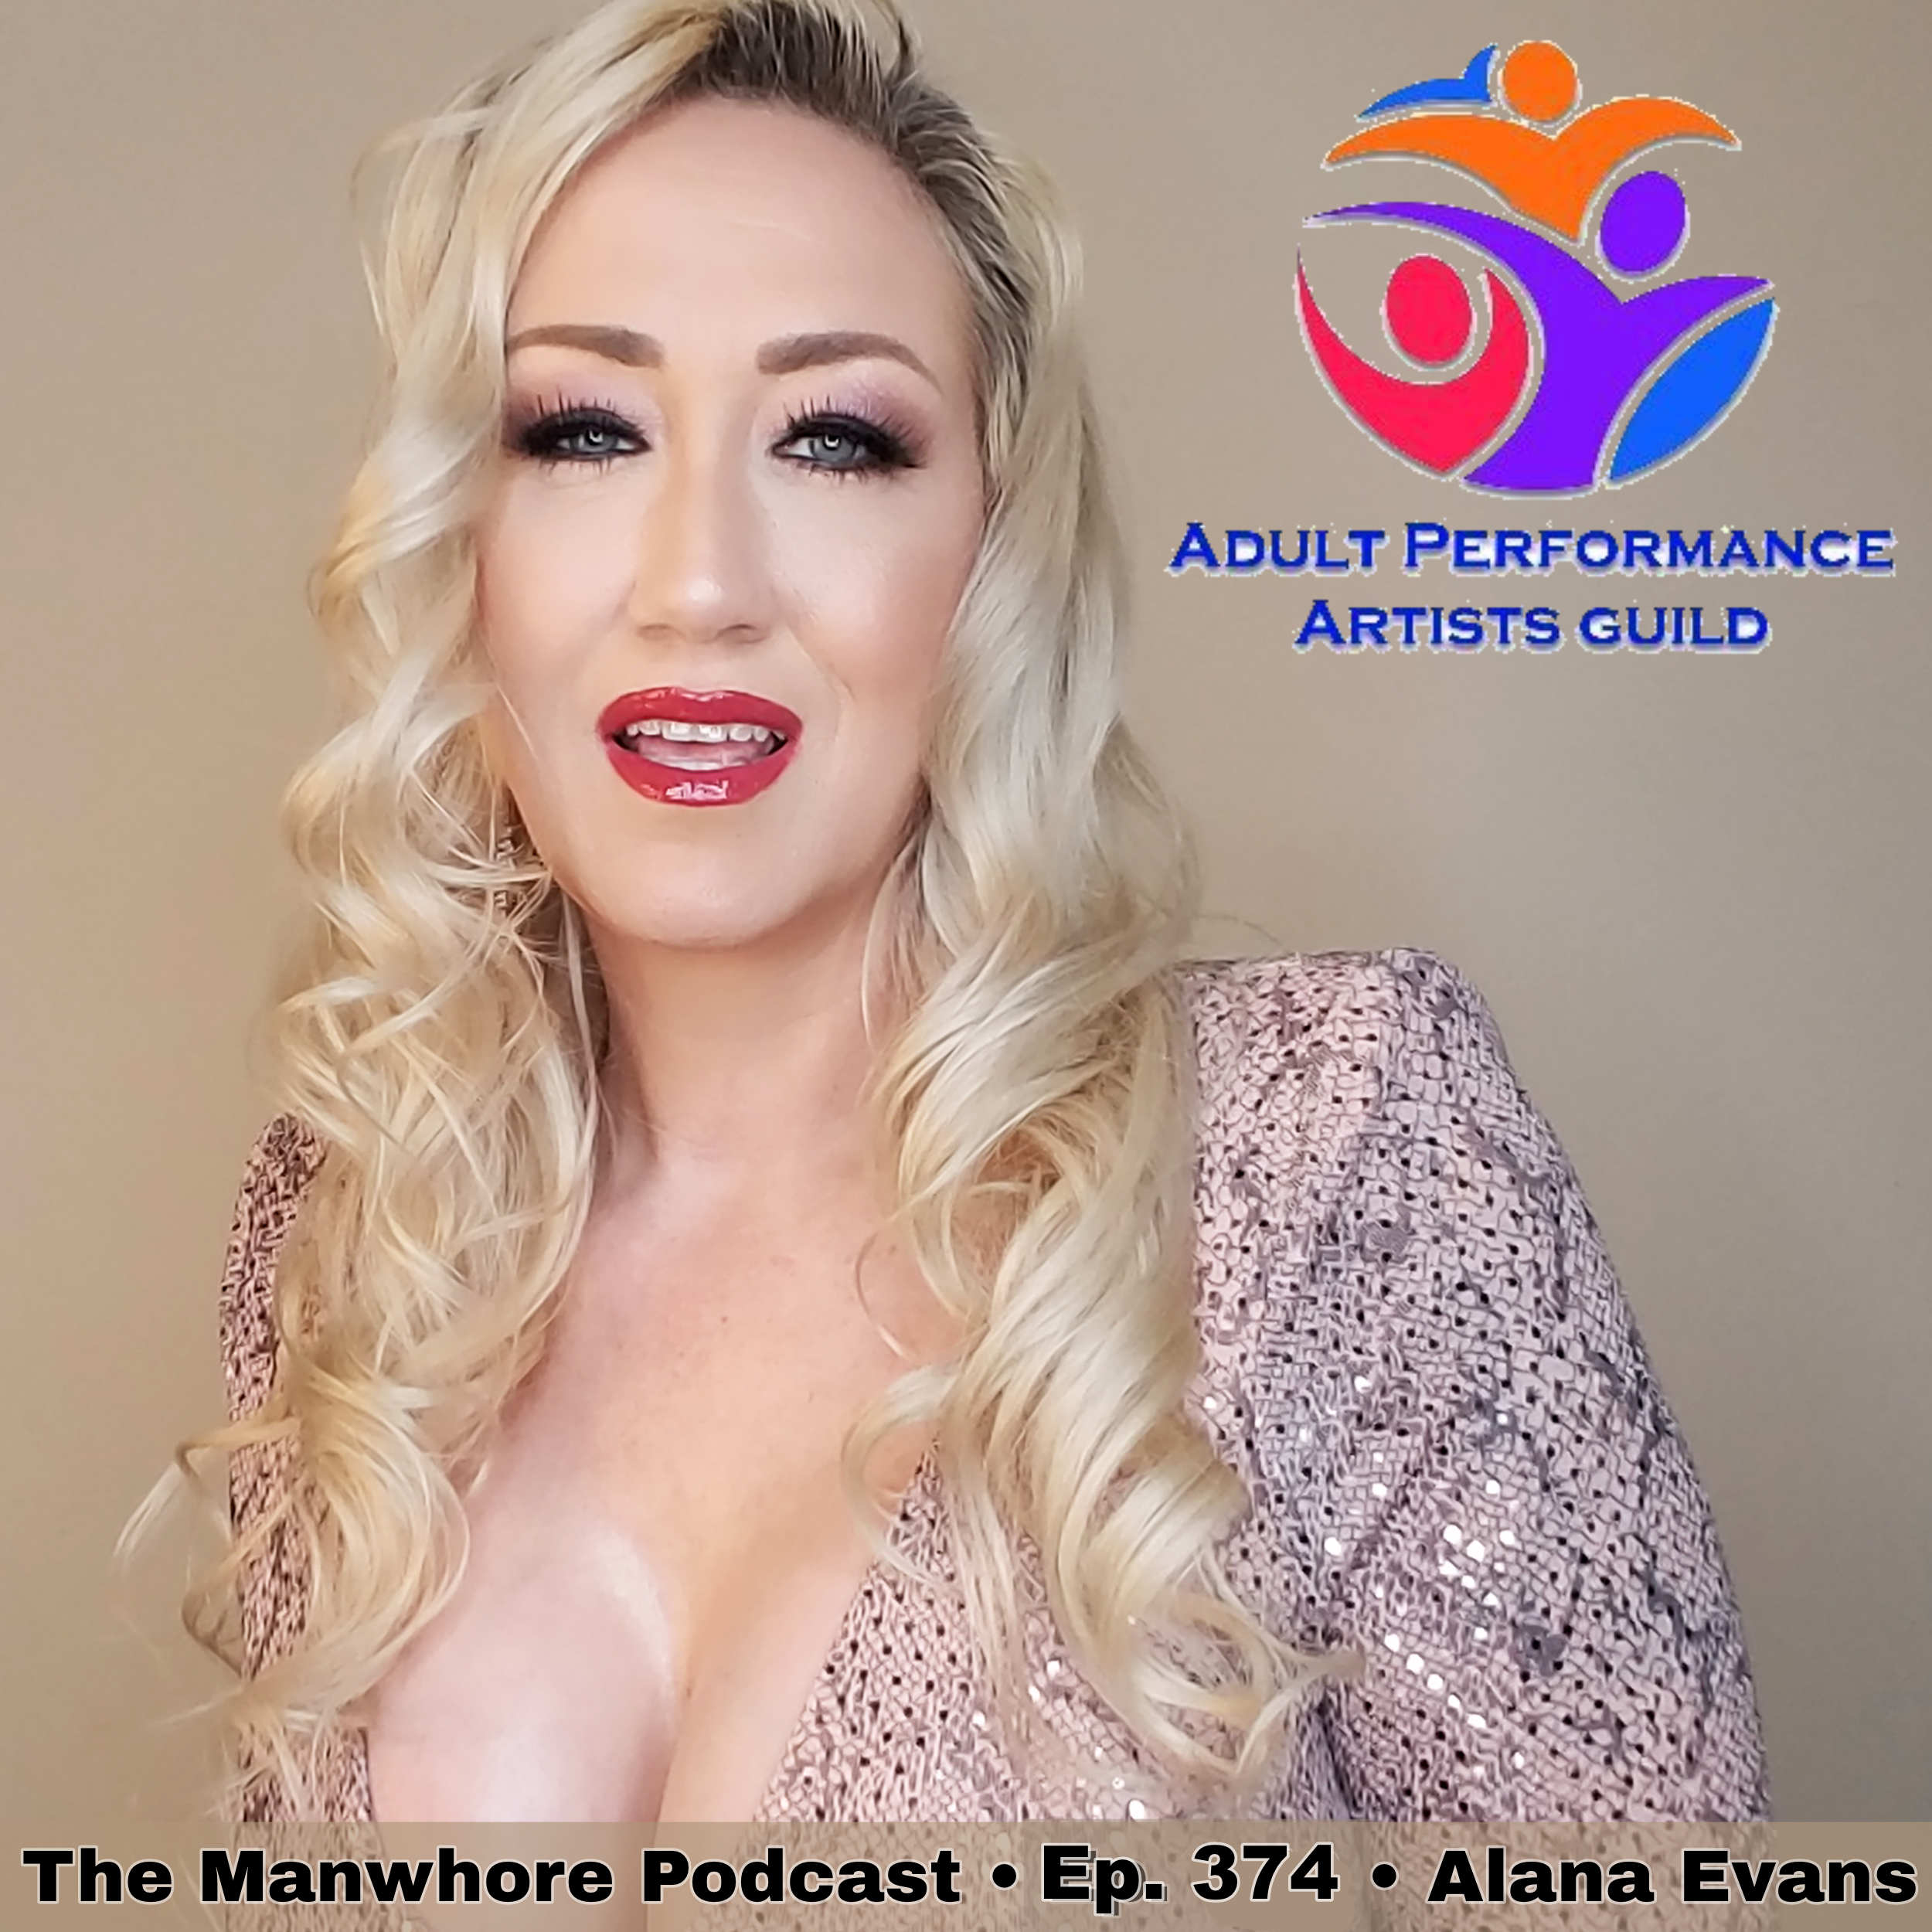 The Manwhore Podcast: A Sex-Positive Quest - Ep. 374: Is OnlyFans In Trouble? with Alana Evans